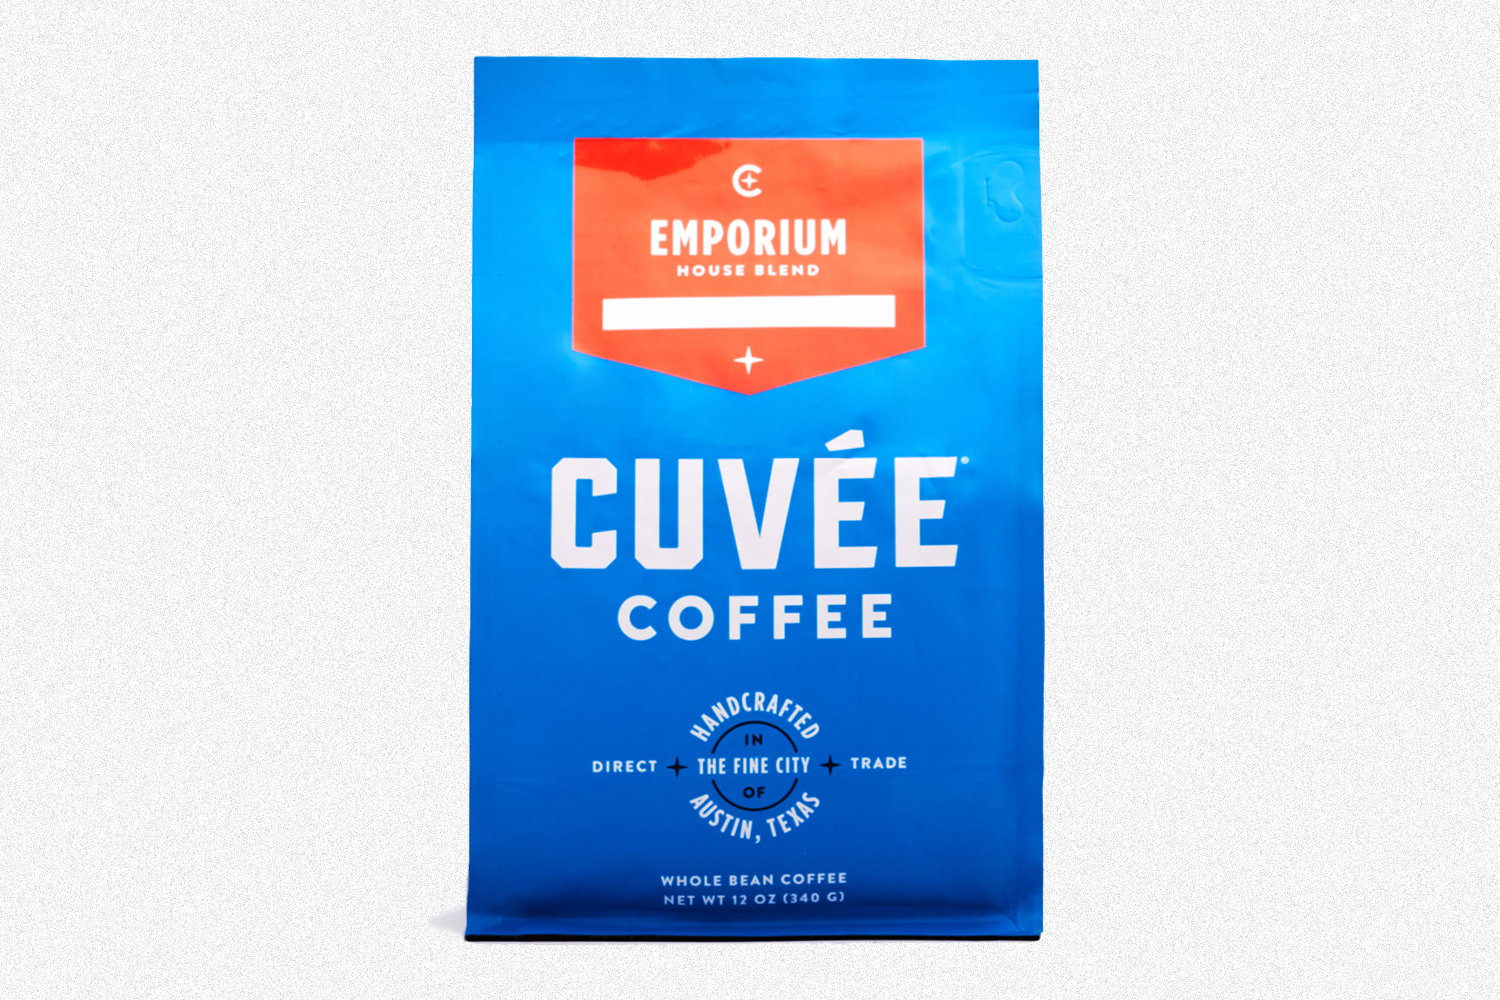 A blue bag of Cuvee coffee beans